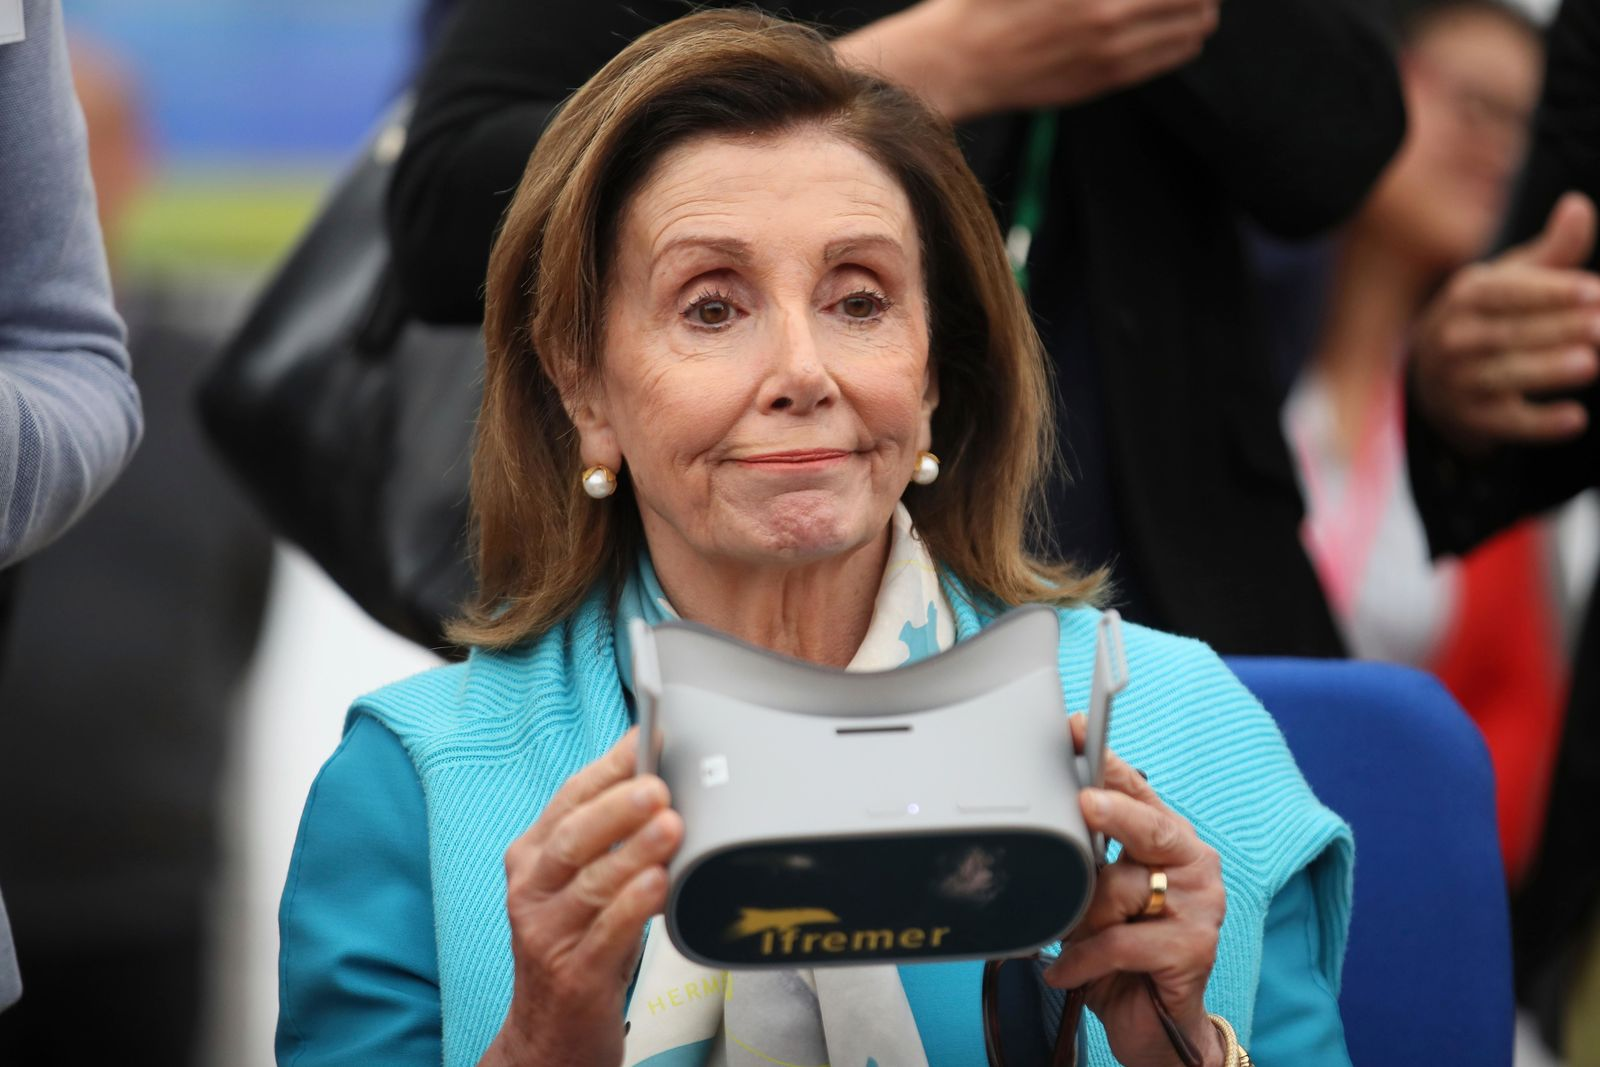 U.S. House Speaker Nancy Pelosi holds a virtual reality mask as she visits the French Research Institute for the Exploitation of the Sea (IFREMER), in Brest, western France, Friday, Sept. 6, 2019. (AP Photo/David Vincent, Pool)